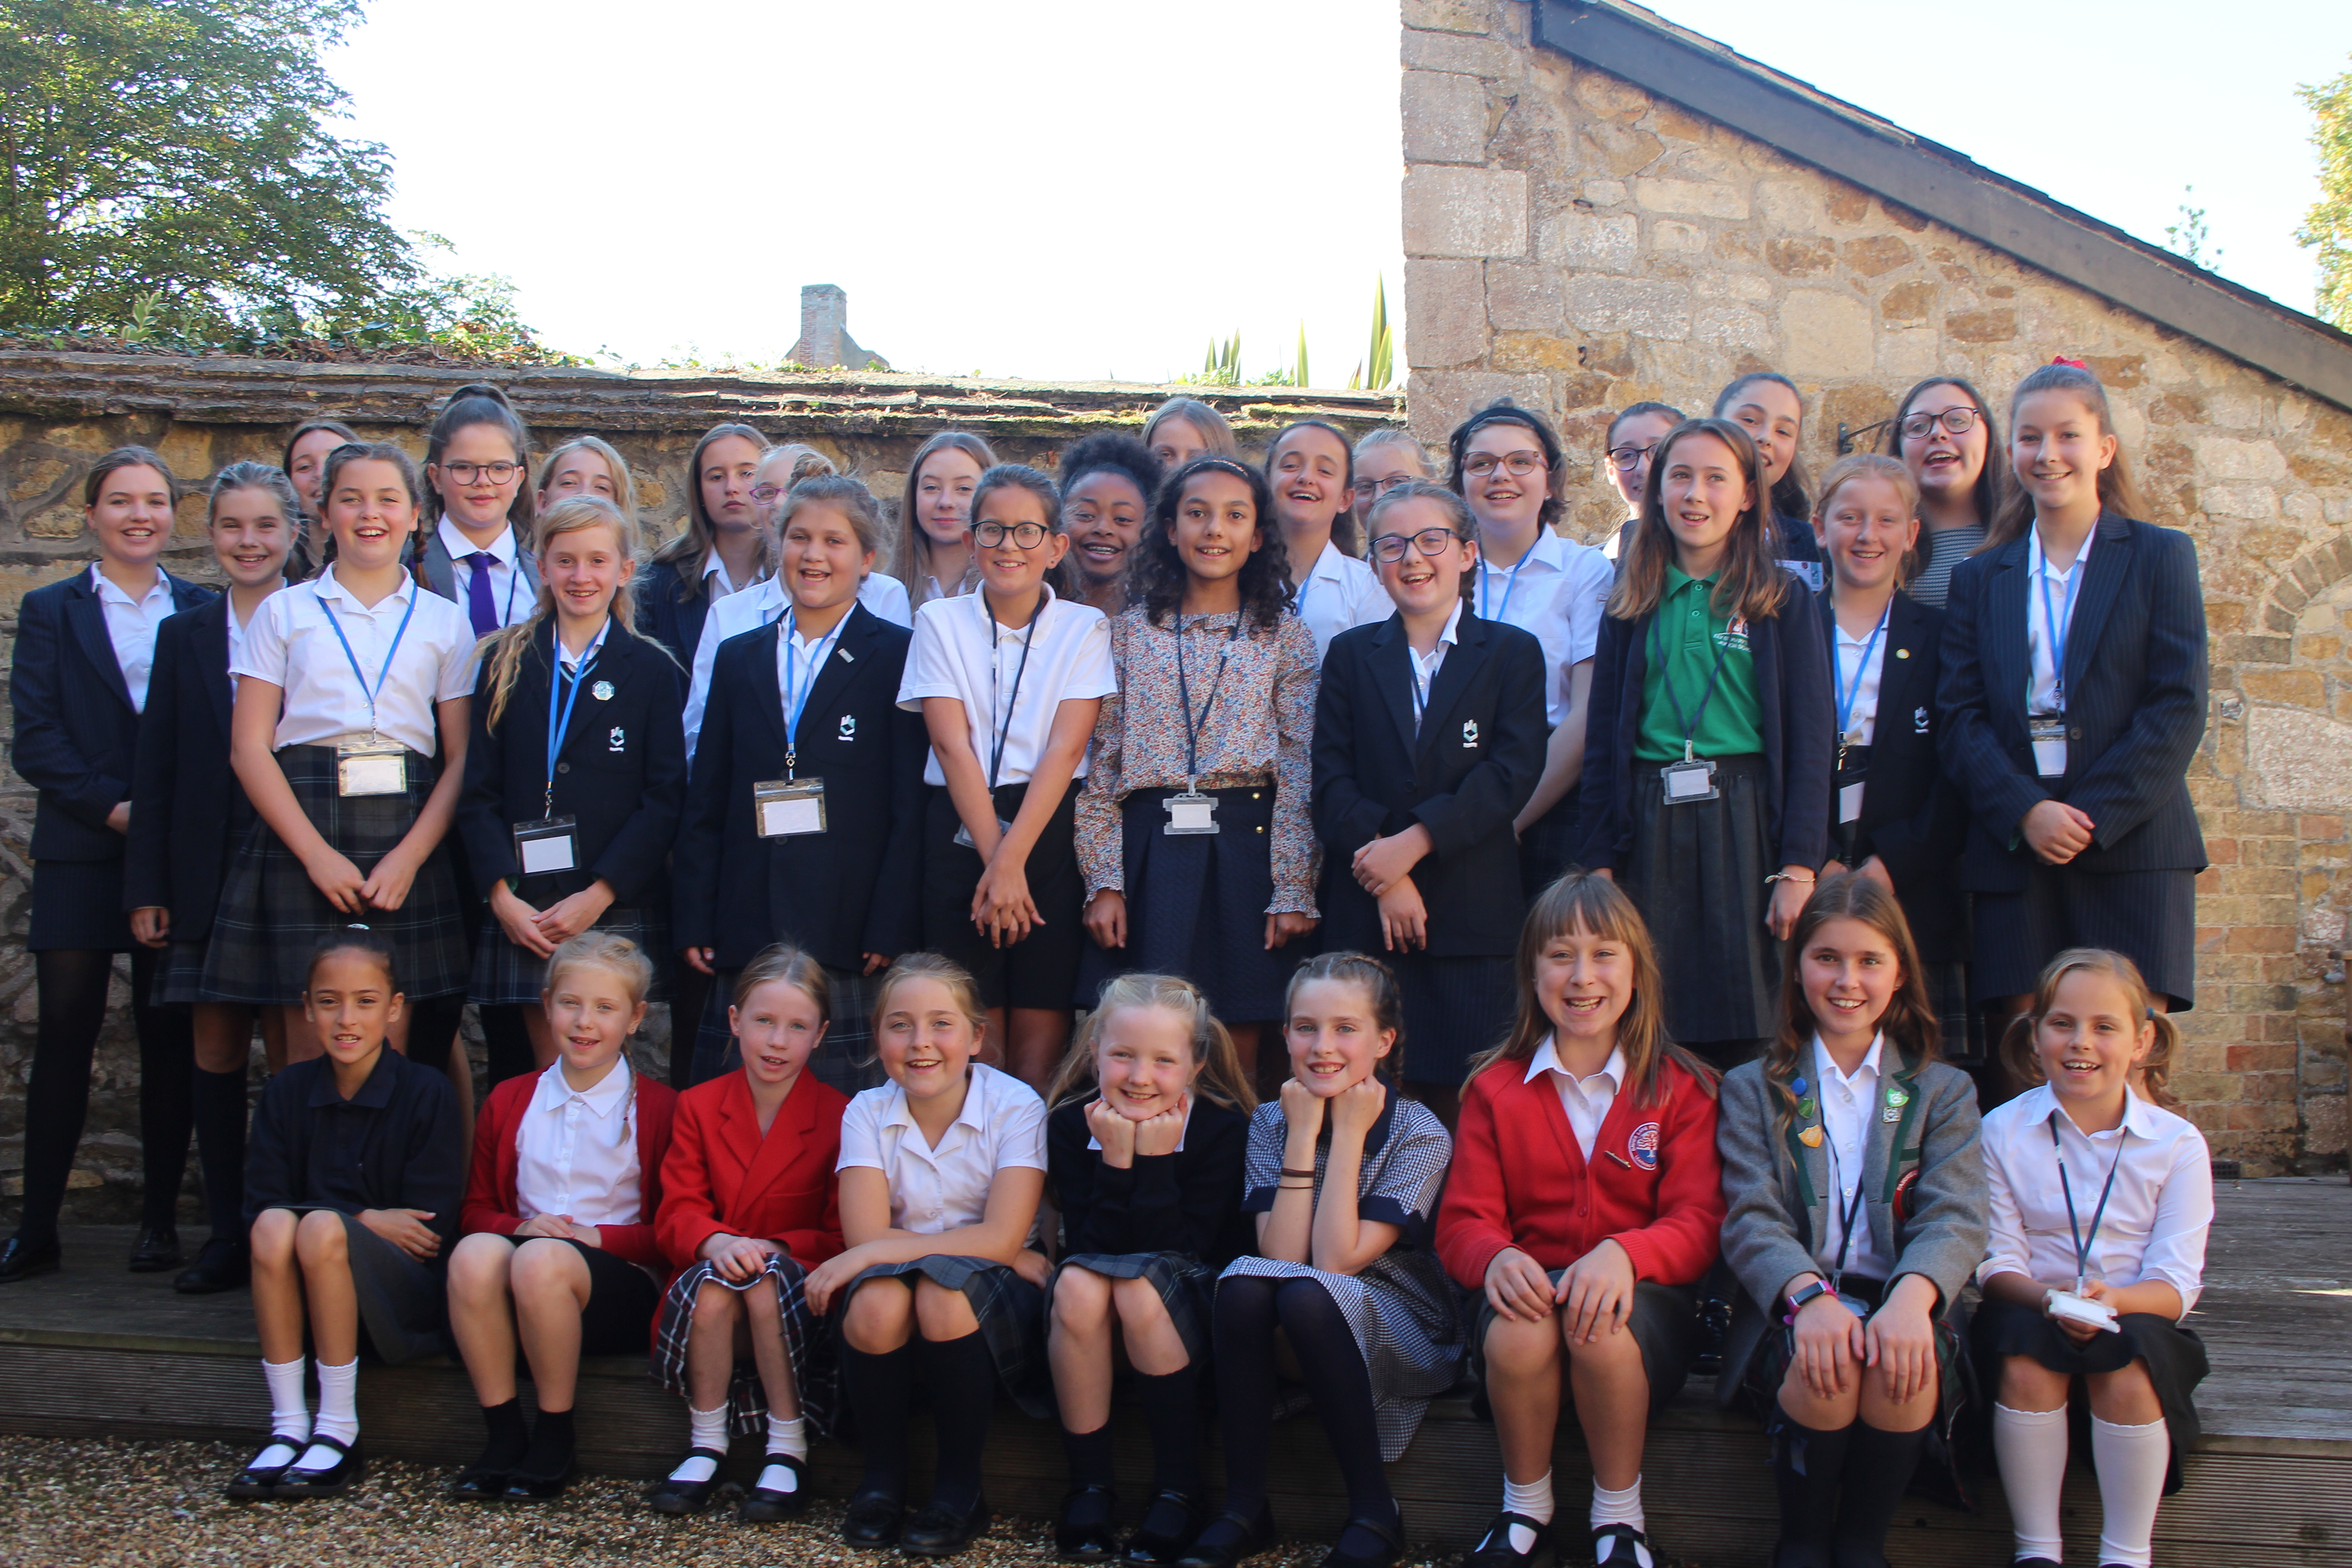 Girls get a glimpse of what life is like as an Ely Cathedral Chorister